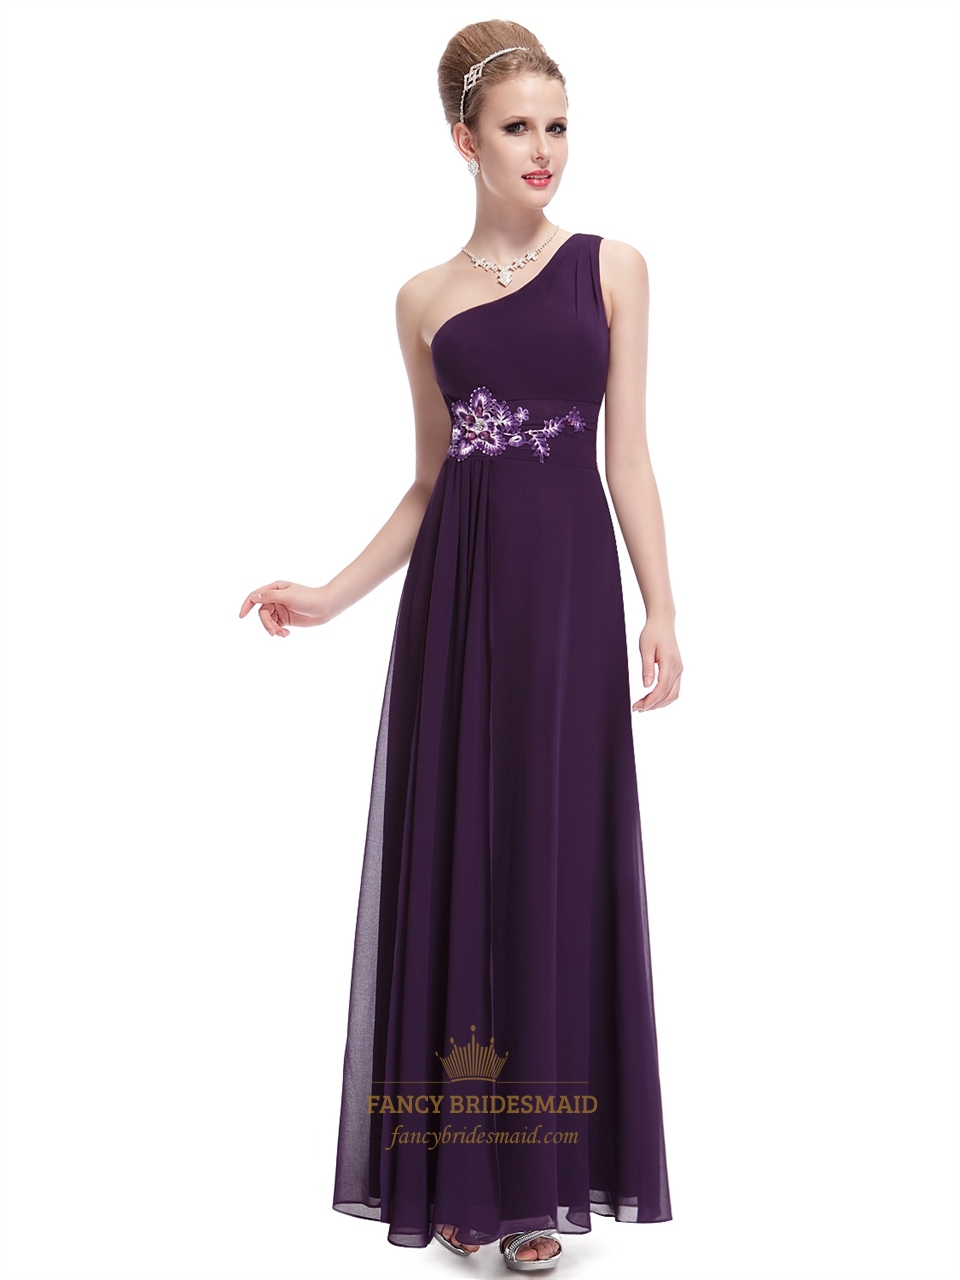 Grape one shoulder chiffon bridesmaid dresses with floral grape one shoulder chiffon bridesmaid dresses with floral appliques ombrellifo Gallery